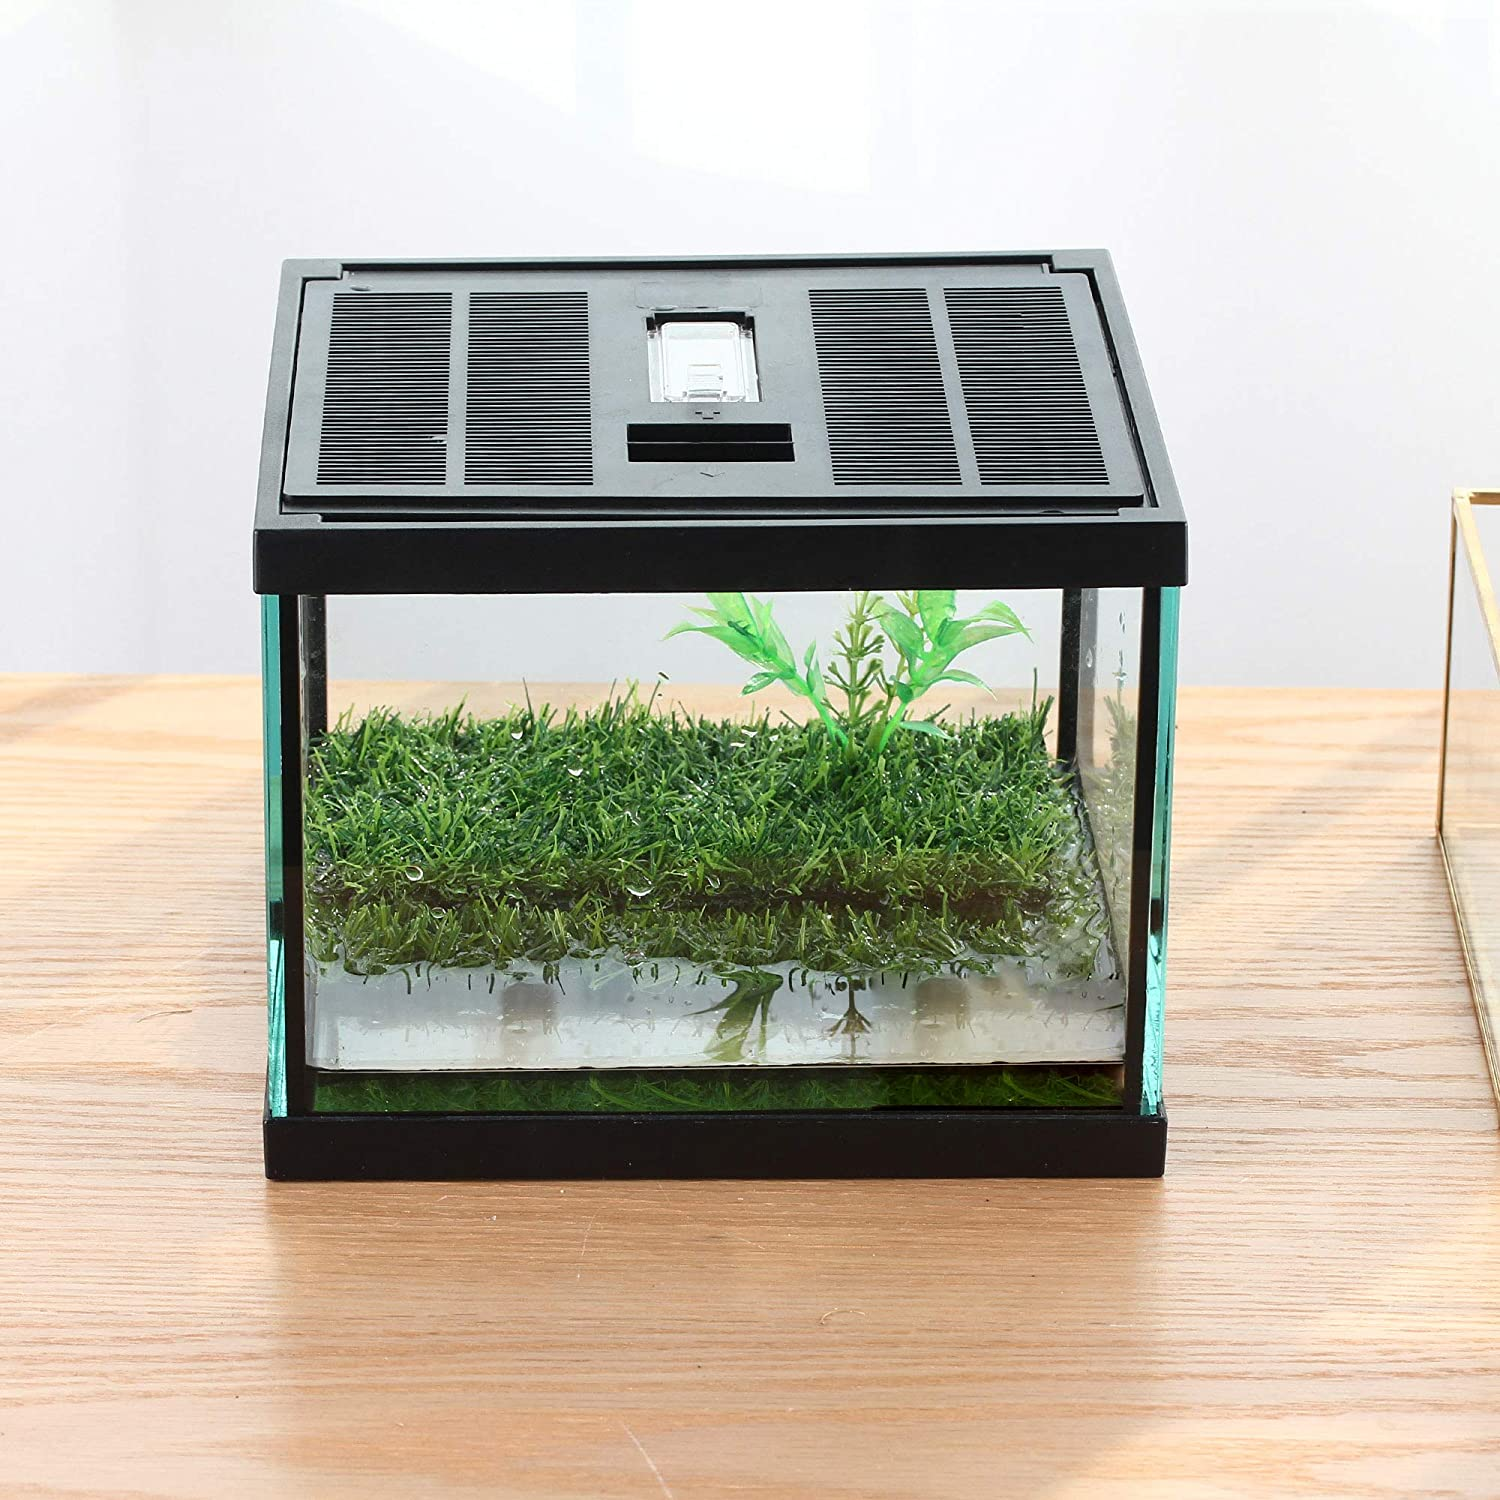 crapelles Pac Frogs Glass Terrarium Feeding kit Tank, Waterproof,for Small Amphibians, Insect, Horned Frogs. Waterweed/Prairie Style Habitat,with Green Artificial Turf Pad, (excluding Animals)